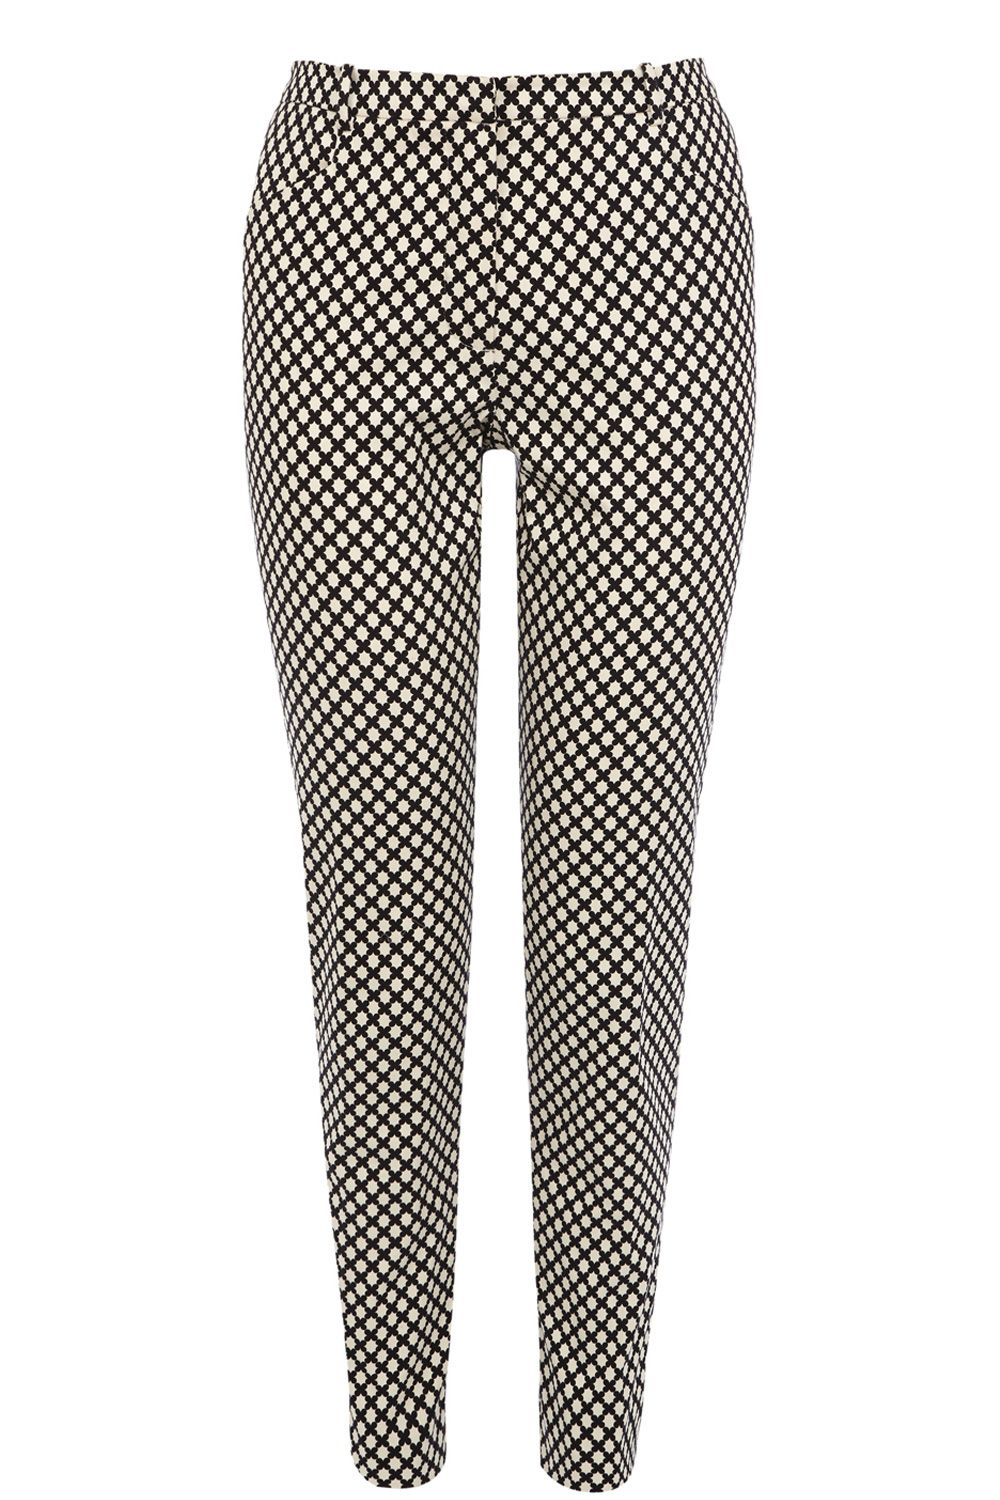 Geo club print trousers